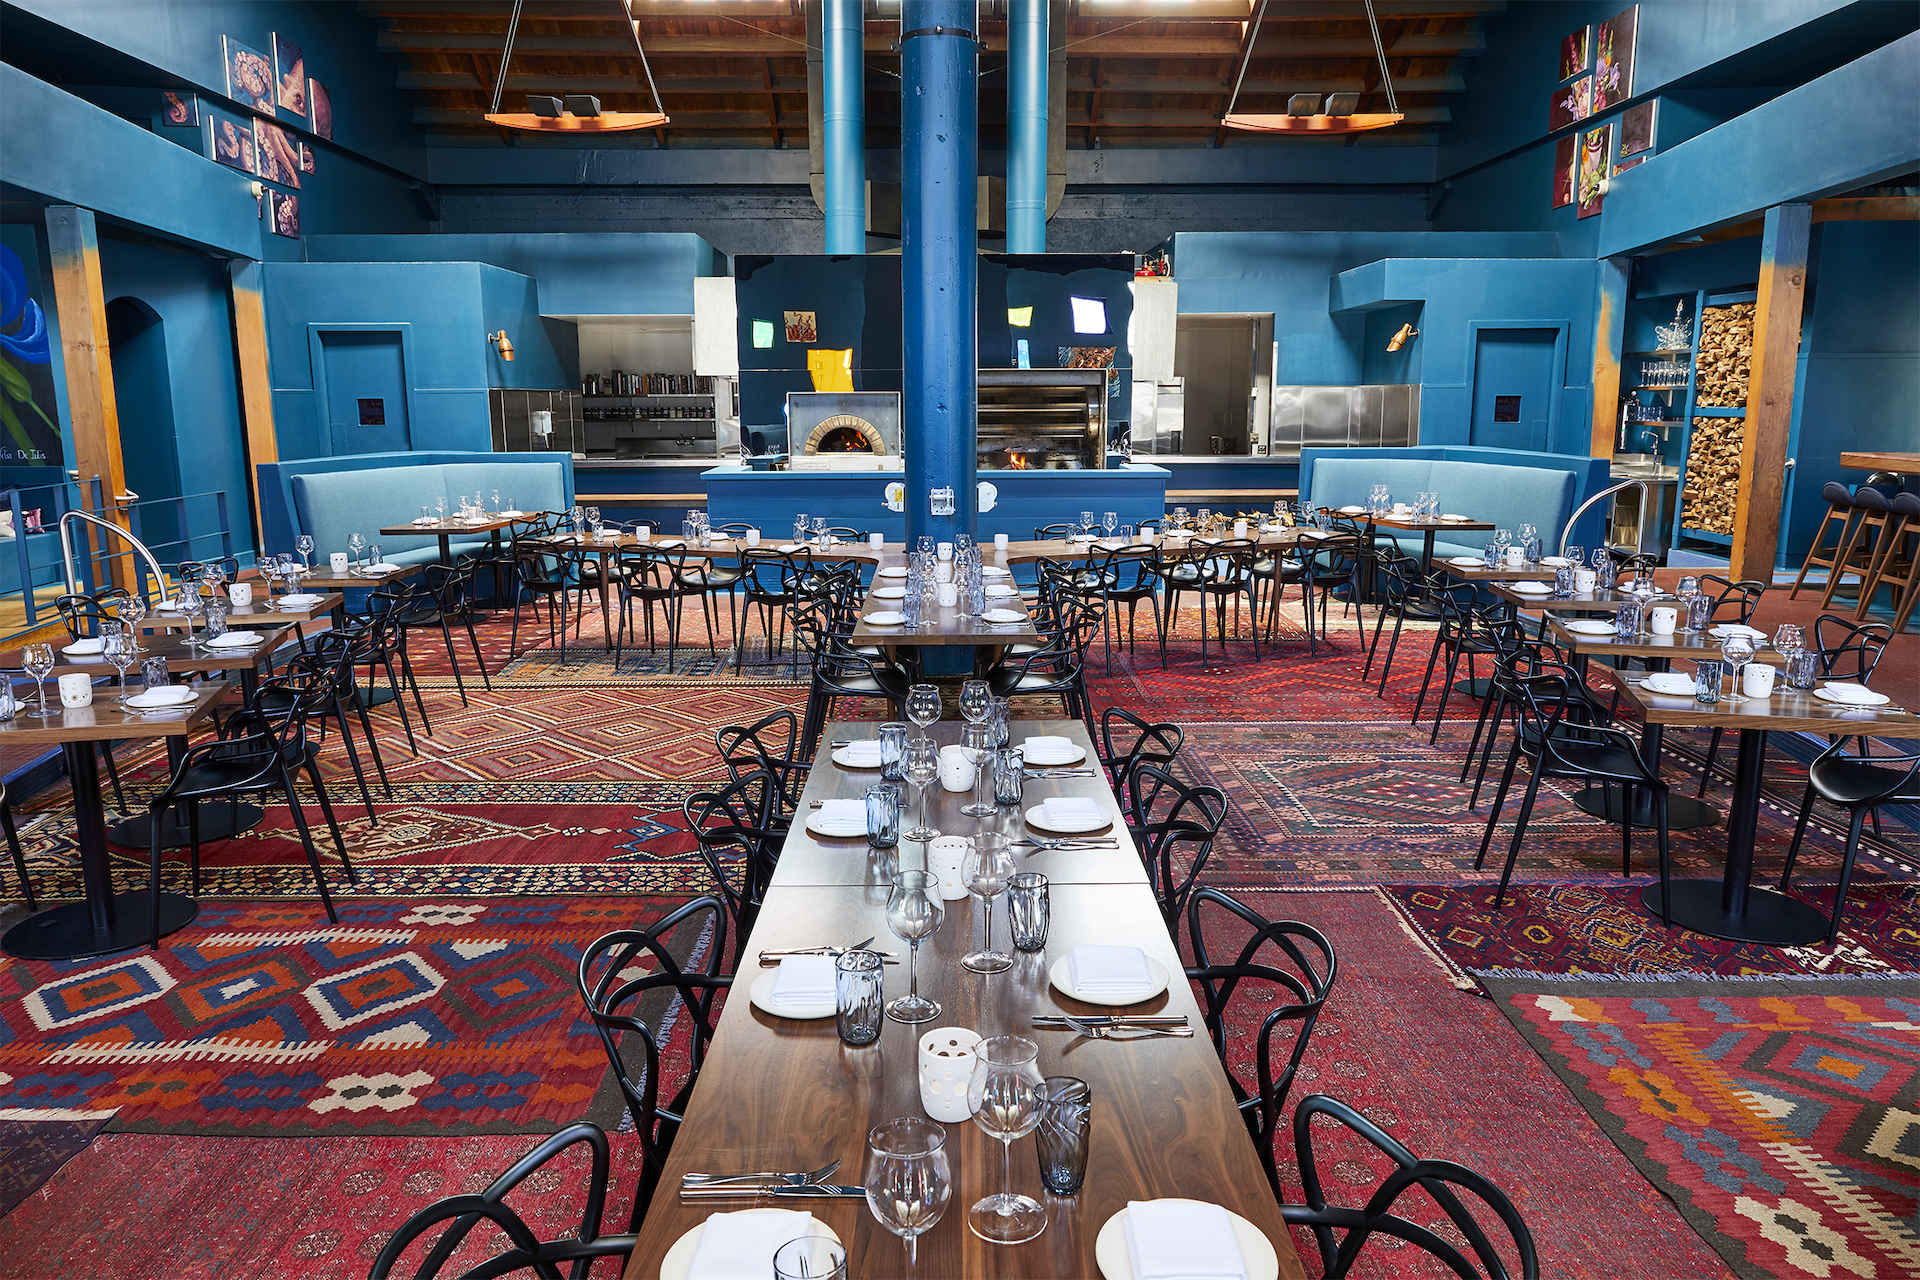 The dining room at the Folsom St.'s Palette